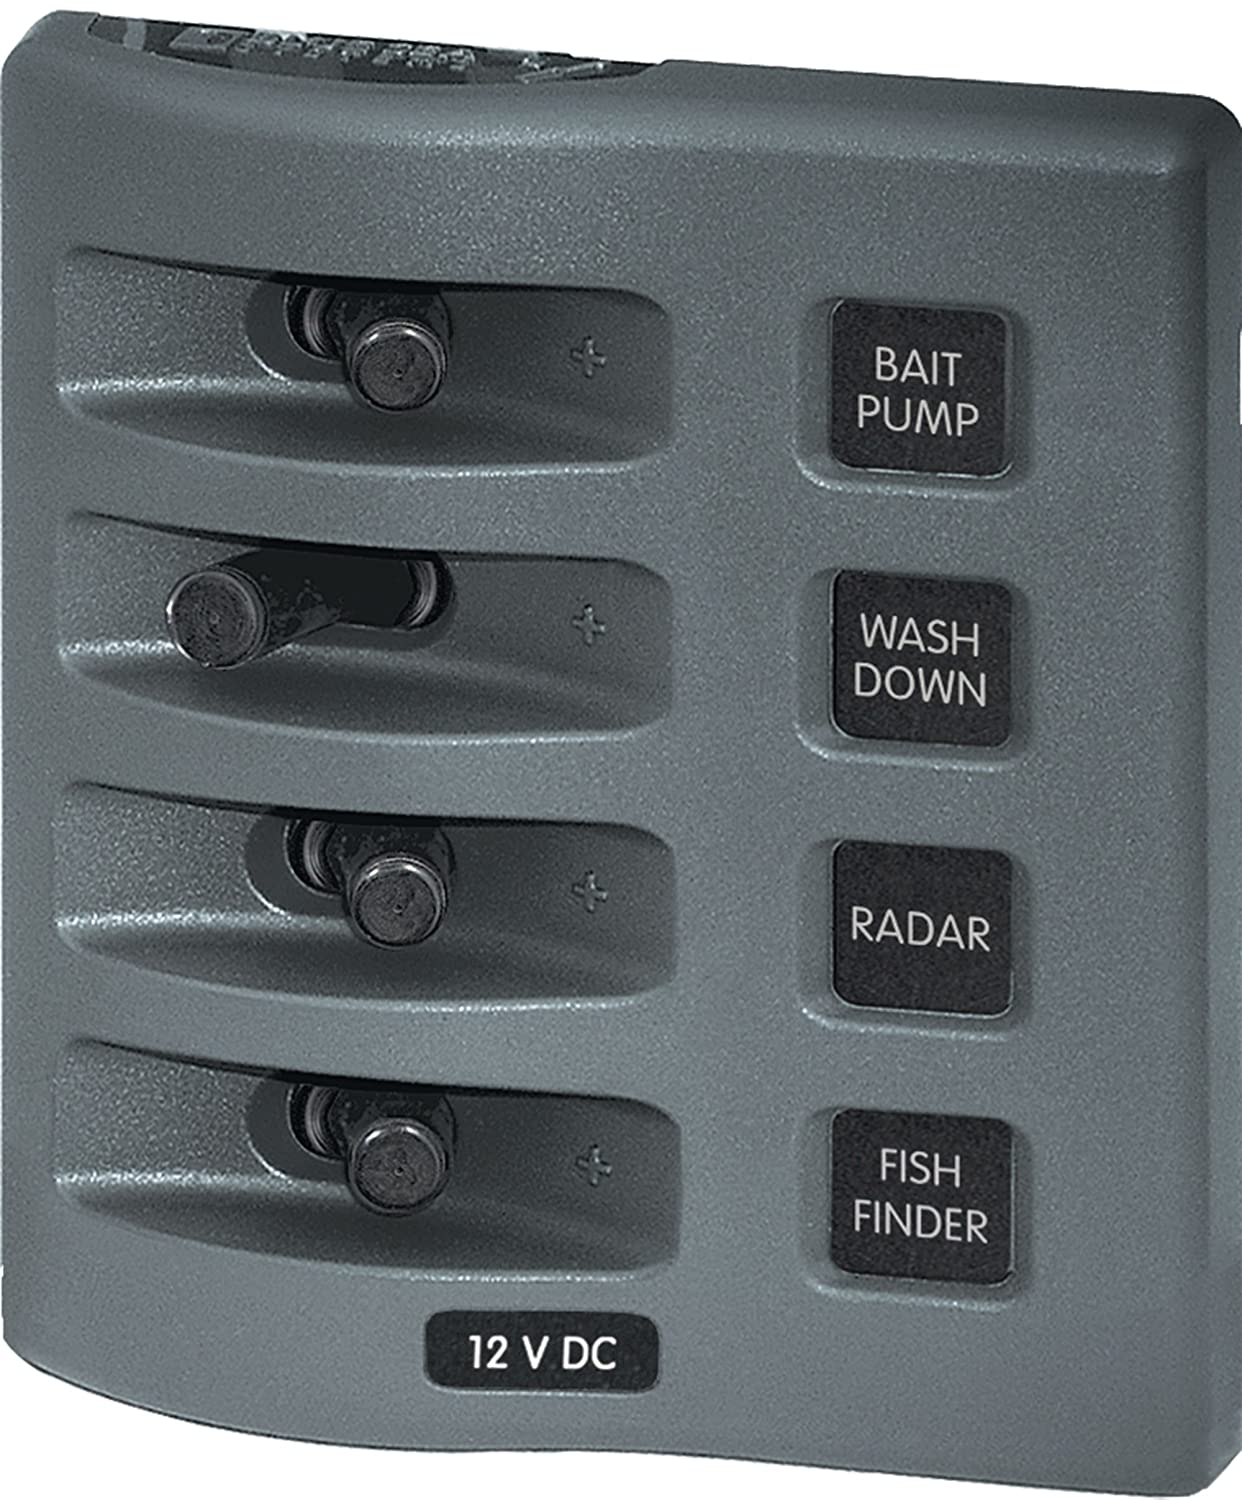 Amazon.com : Blue Sea Systems WeatherDeck 12V DC 2-Position Circuit Breaker  Waterproof Fuse Panel, Grey : Boating Panels : Sports & Outdoors